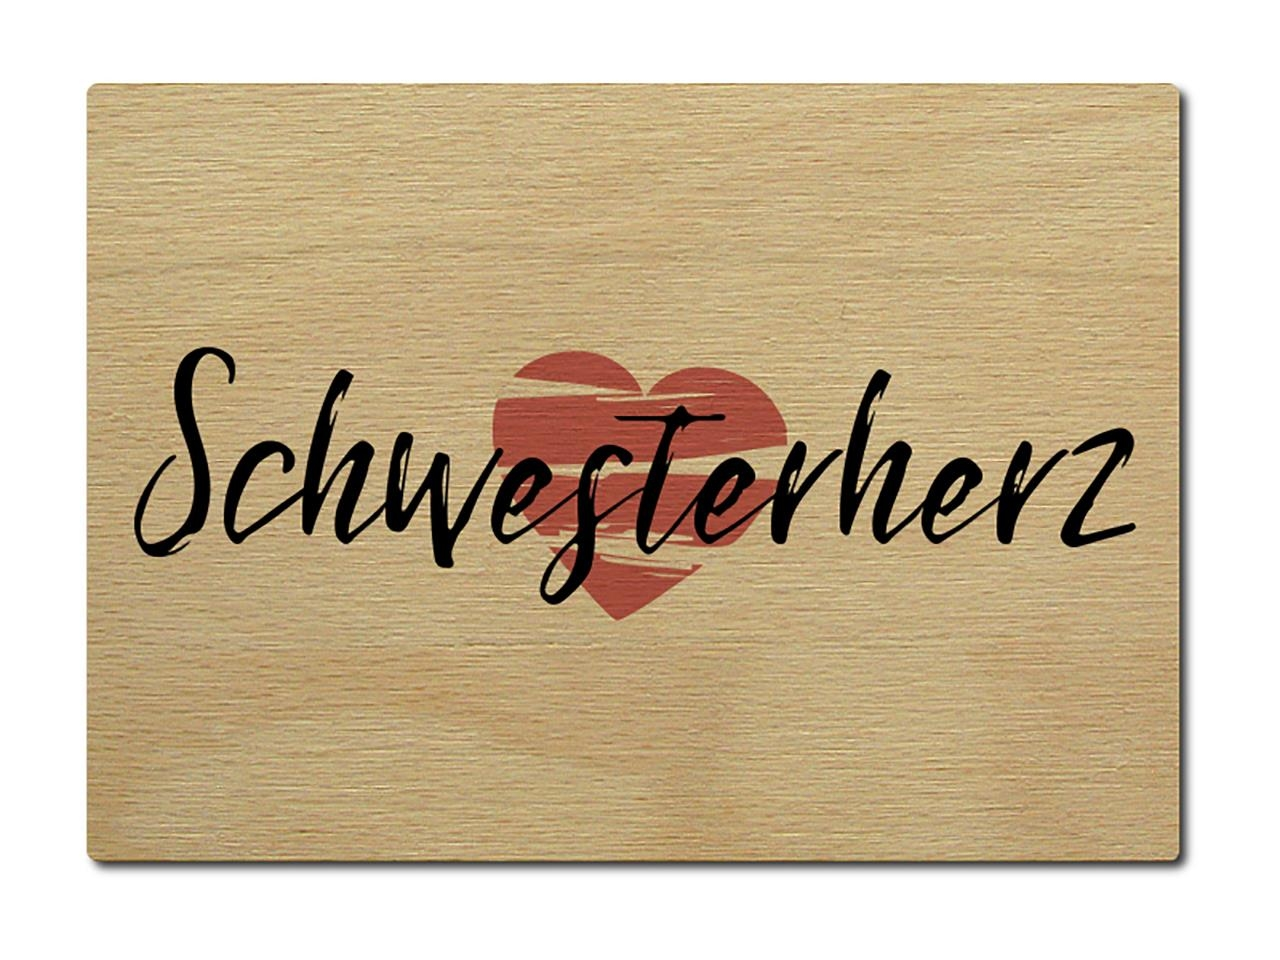 luxecards postkarte aus holz schwesterherz geburtstag geschenk famili. Black Bedroom Furniture Sets. Home Design Ideas